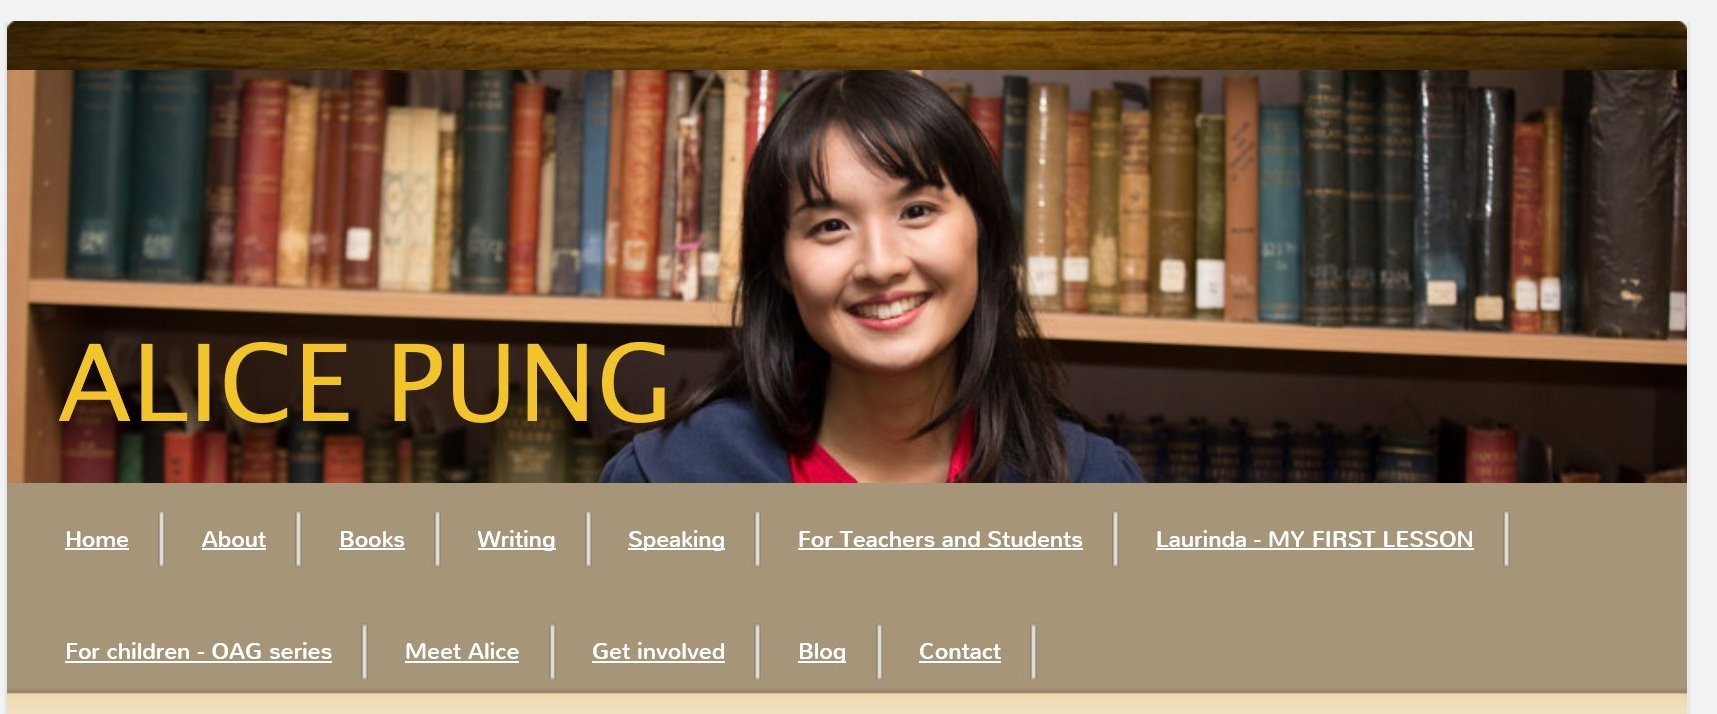 growing up asian in english libguides at assumption this site was especially created for students and teachers and anyone generally interested in alice s work it contains interviews articles essays